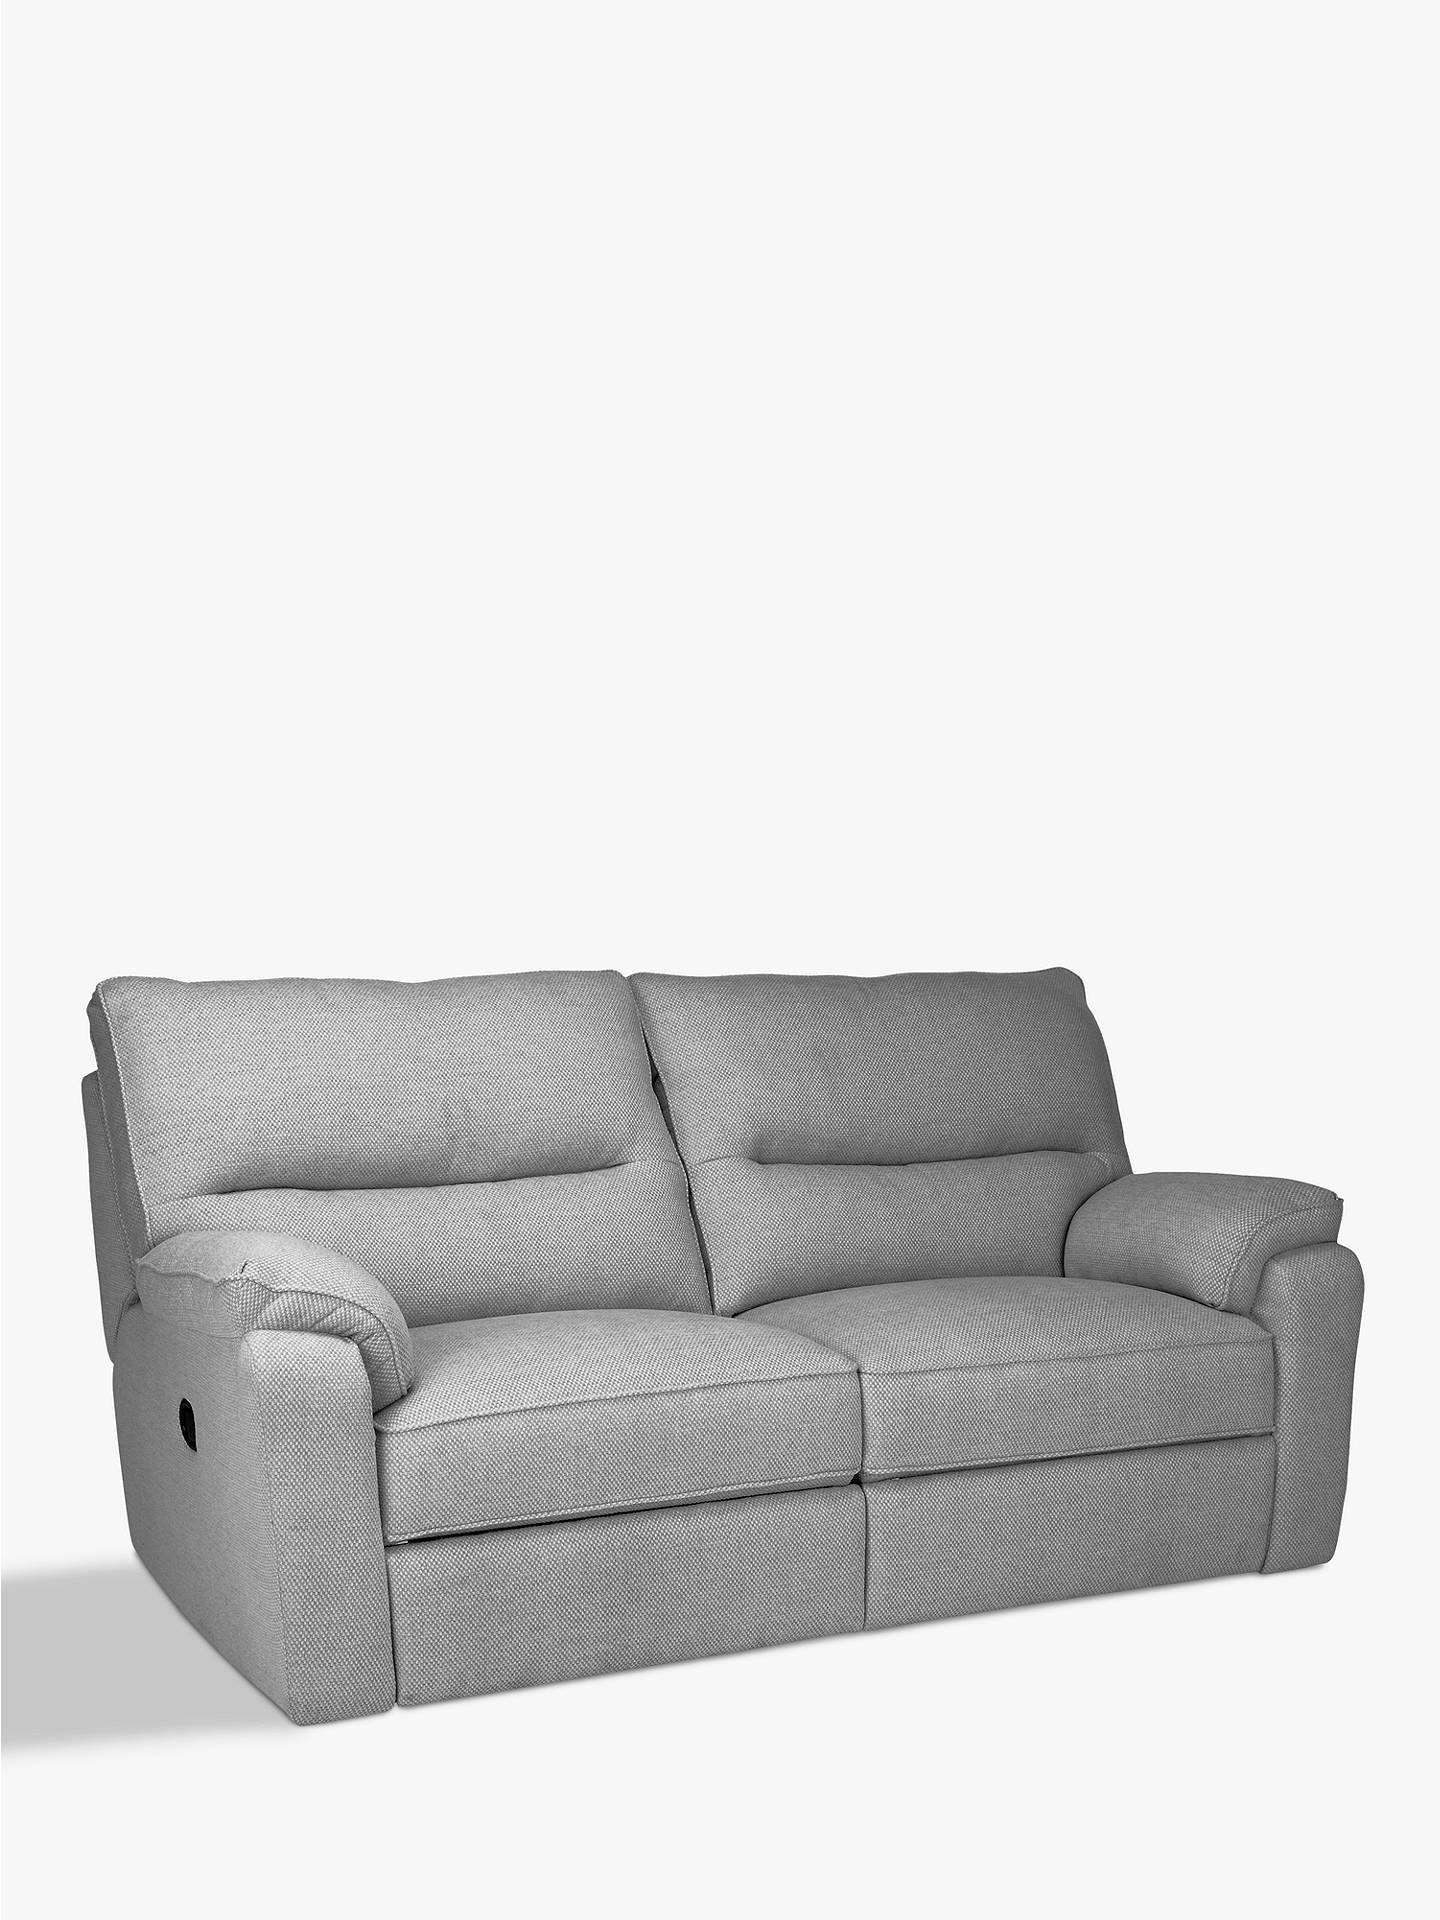 John Lewis & Partners Carlisle Small 2 Seater Power Recliner Sofa